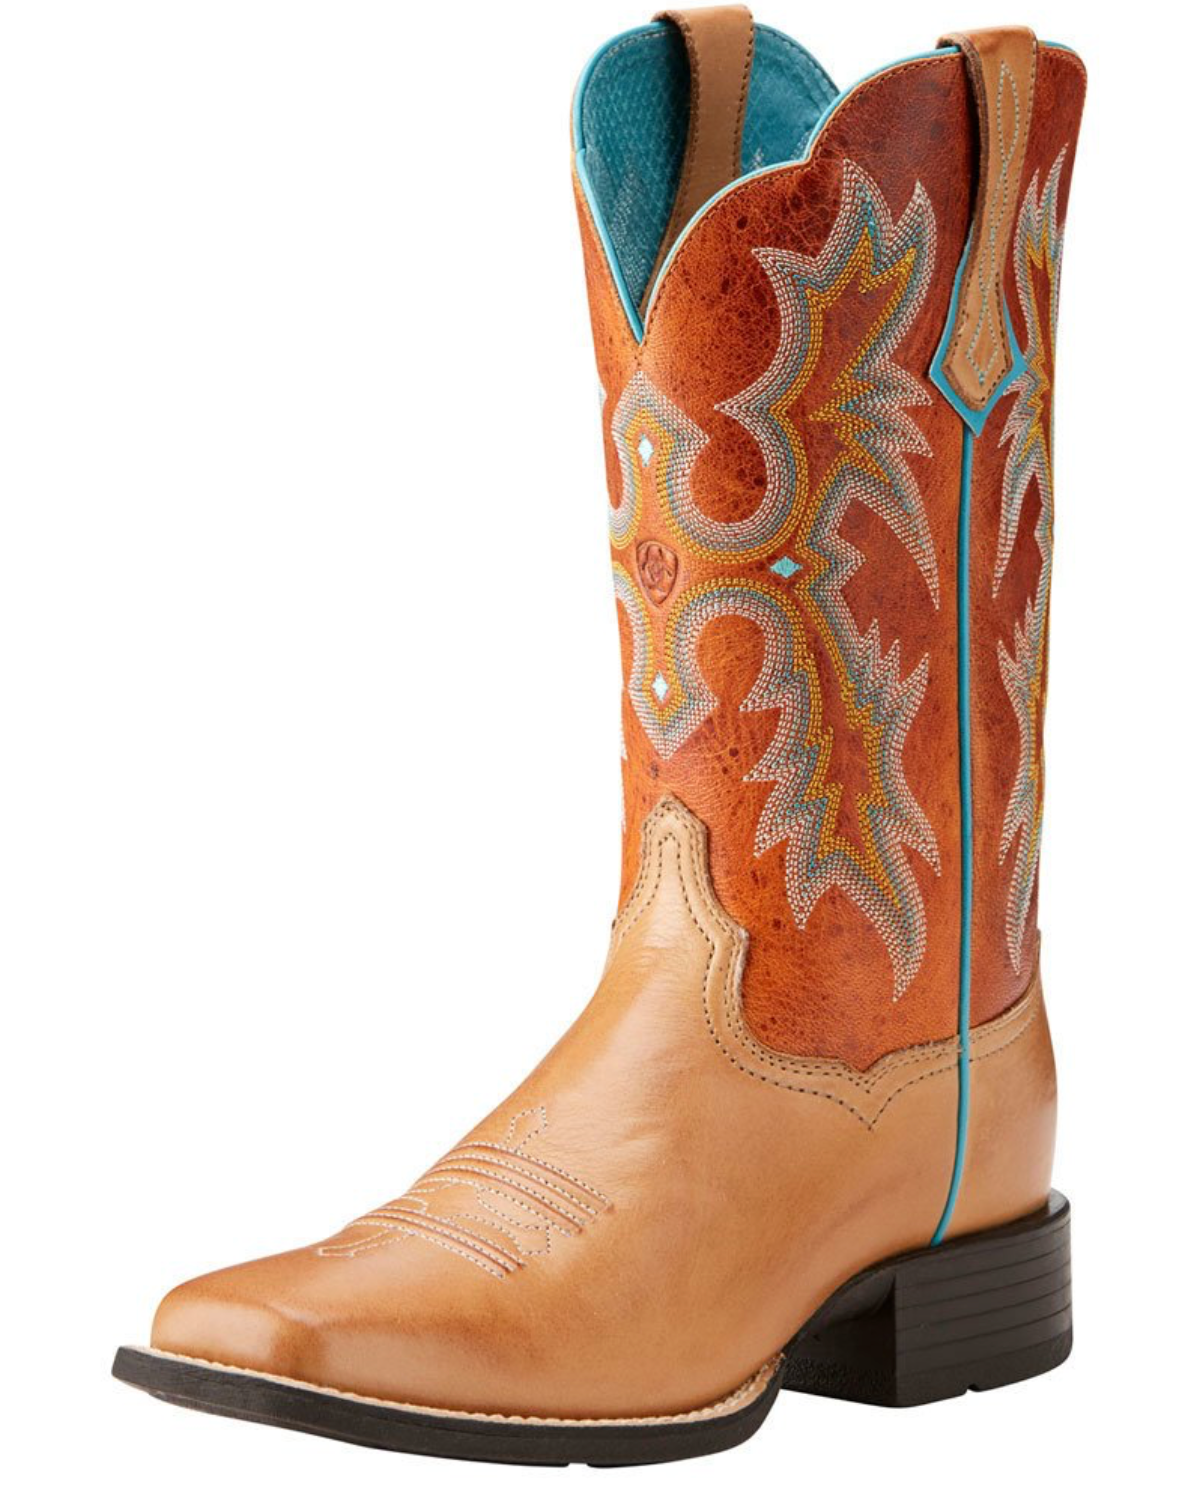 Ariat Womens Tombstone Rum Honey size 5.5B - FINAL SALE WOMEN - Footwear - Boots - Western Boots Ariat Footwear Teskeys